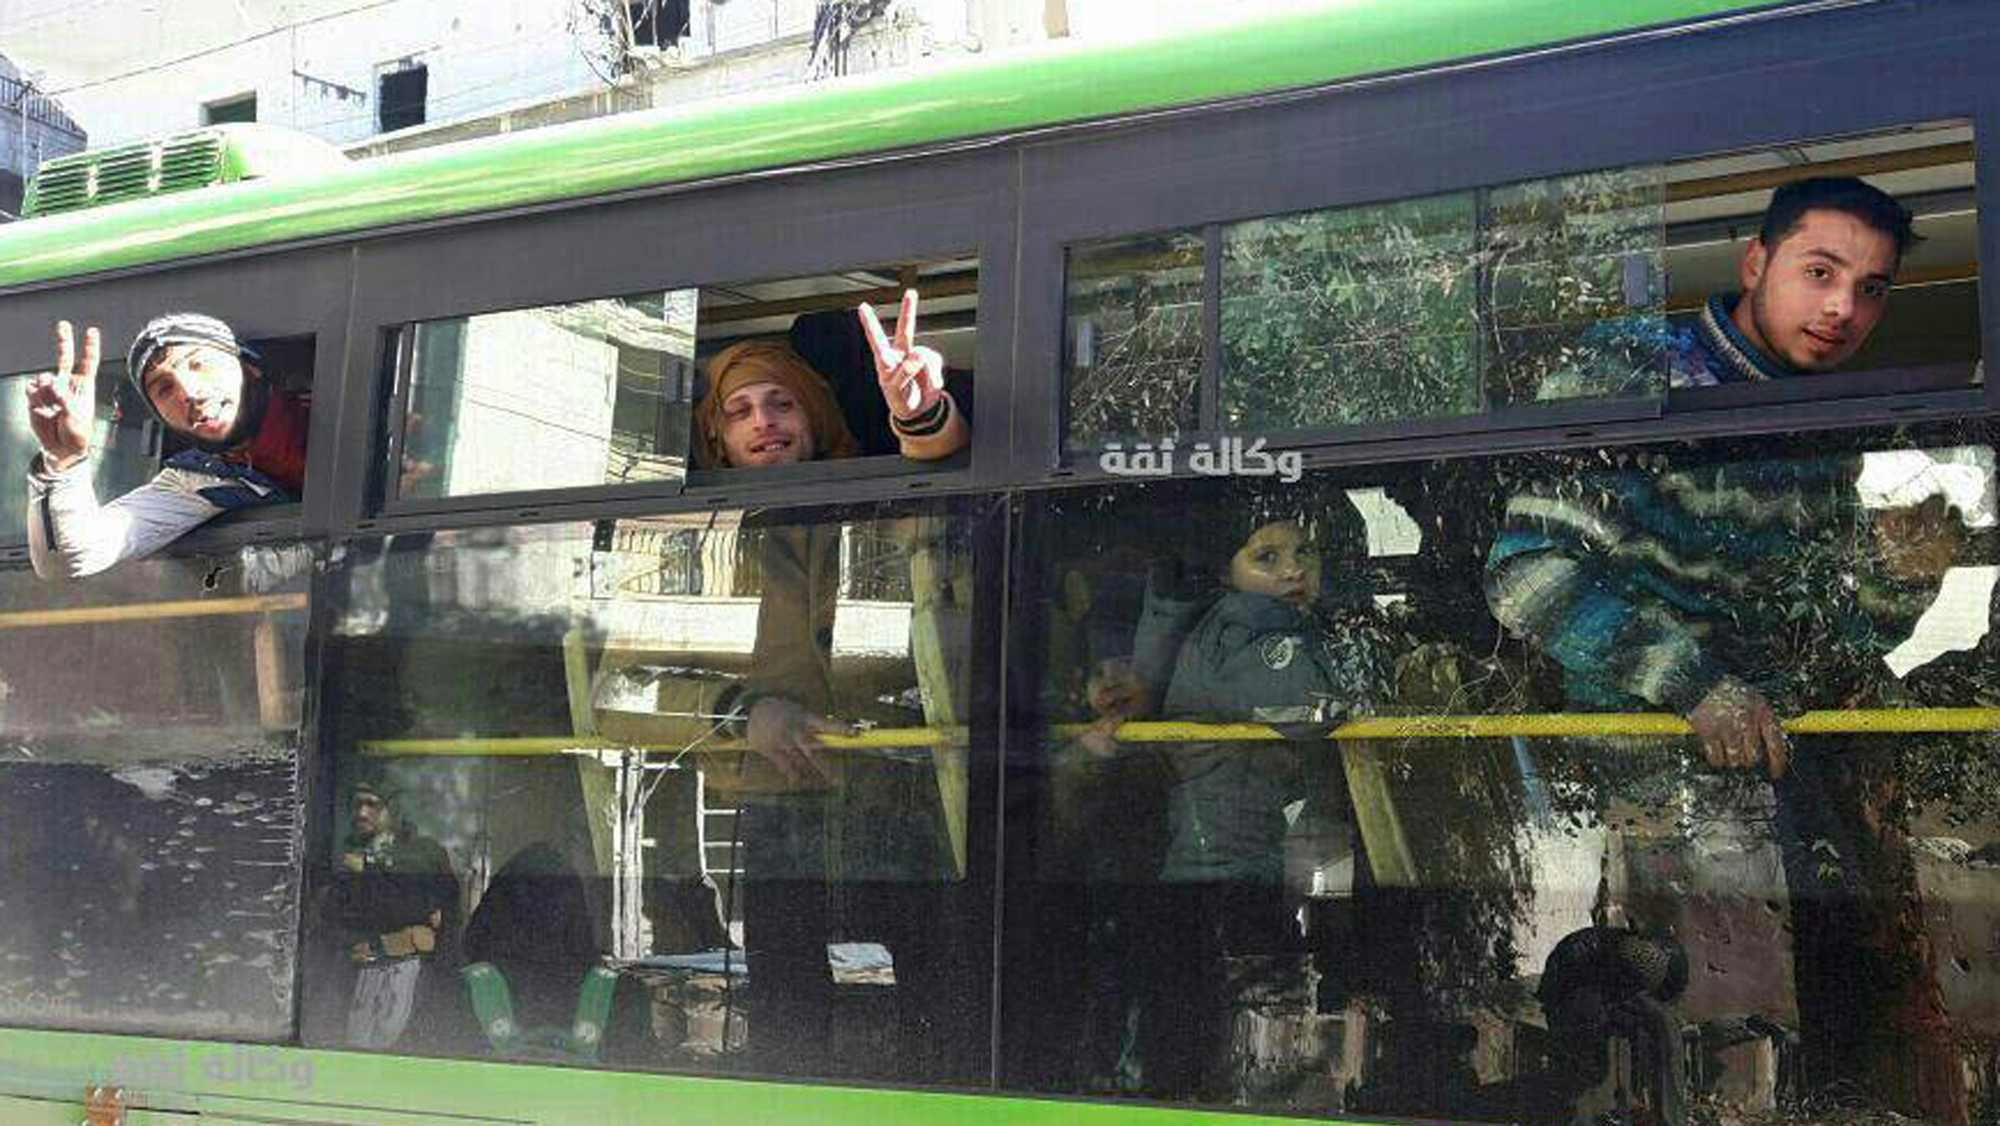 This image released by the Thiqa News Agency, shows civilians, some flashing victory signs, inside a bus that is evacuating people from eastern Aleppo, Syria, Thursday, Dec. 15, 2016.